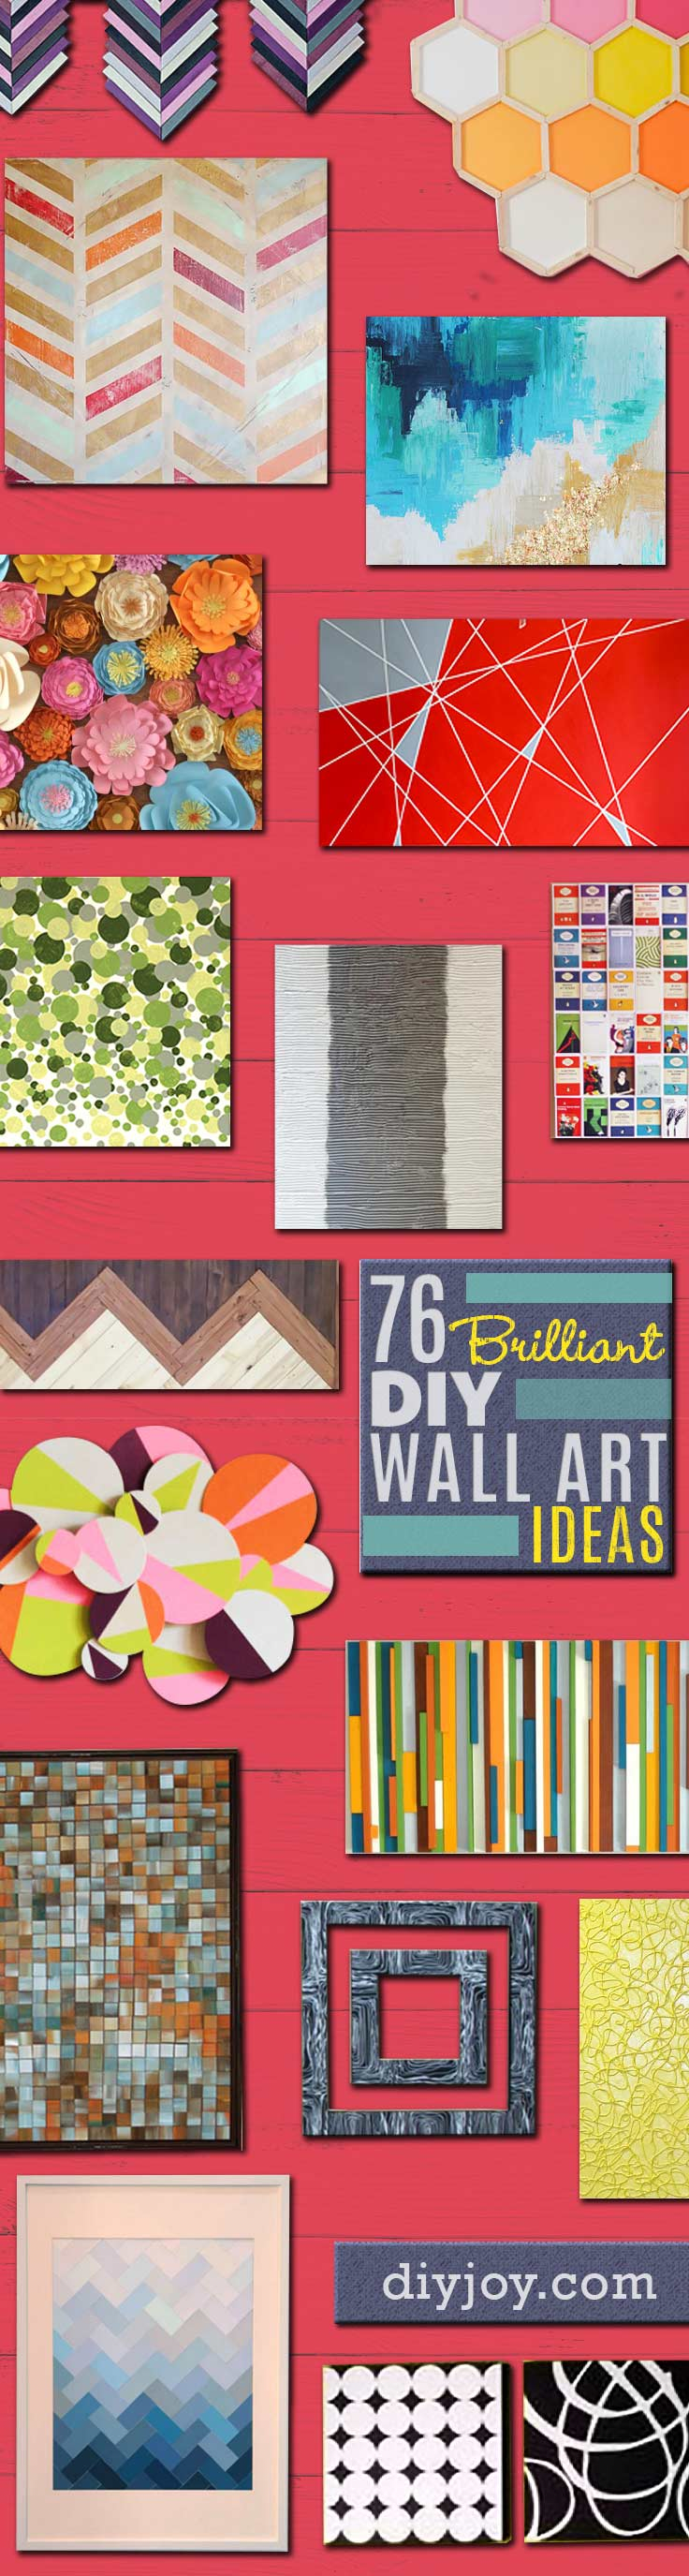 diy wall art ideas -canvas painting idea - Do It Yourself Wall Decor for Living Room, Bedroom, Bathroom, Teen Rooms | Modern, Abstract, Rustic, Simple, Easy and Affordable Wall Art Tutorials | Cheap Ideas for art to make